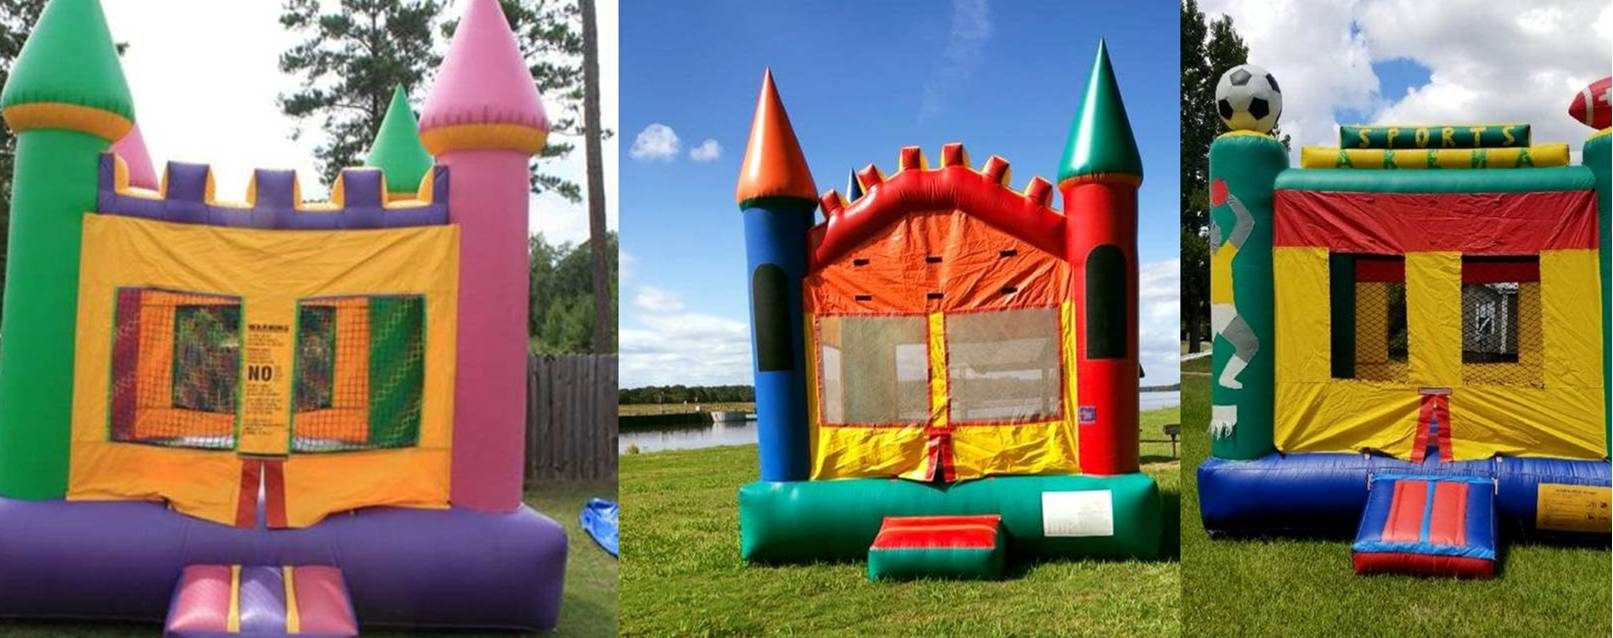 Inflatabe Rentals